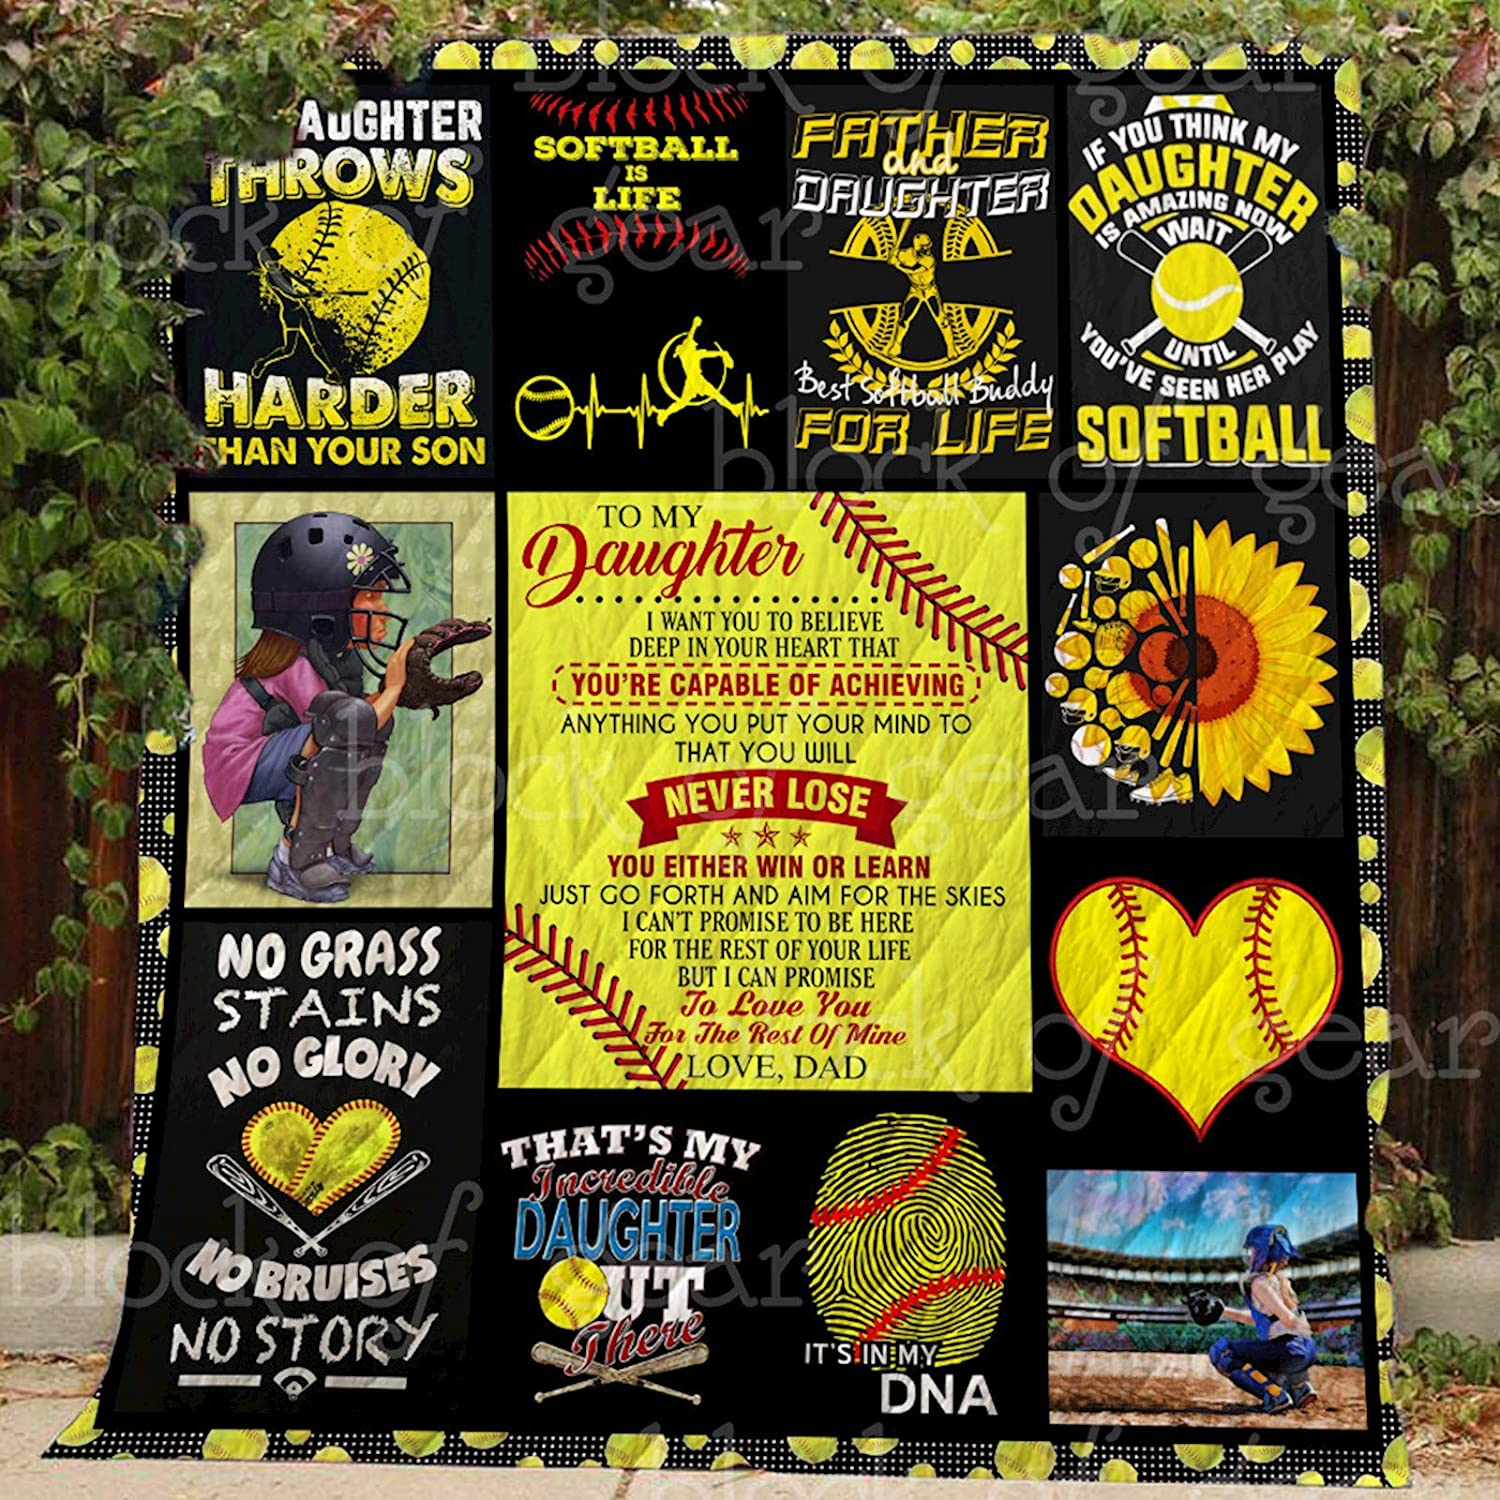 Softball for Daughter Quilt Th611, Queen All-Season Quilts Comforters with Reversible Cotton King Queen Twin Size - Best Decorative Quilts-Unique Quilted for Gifts